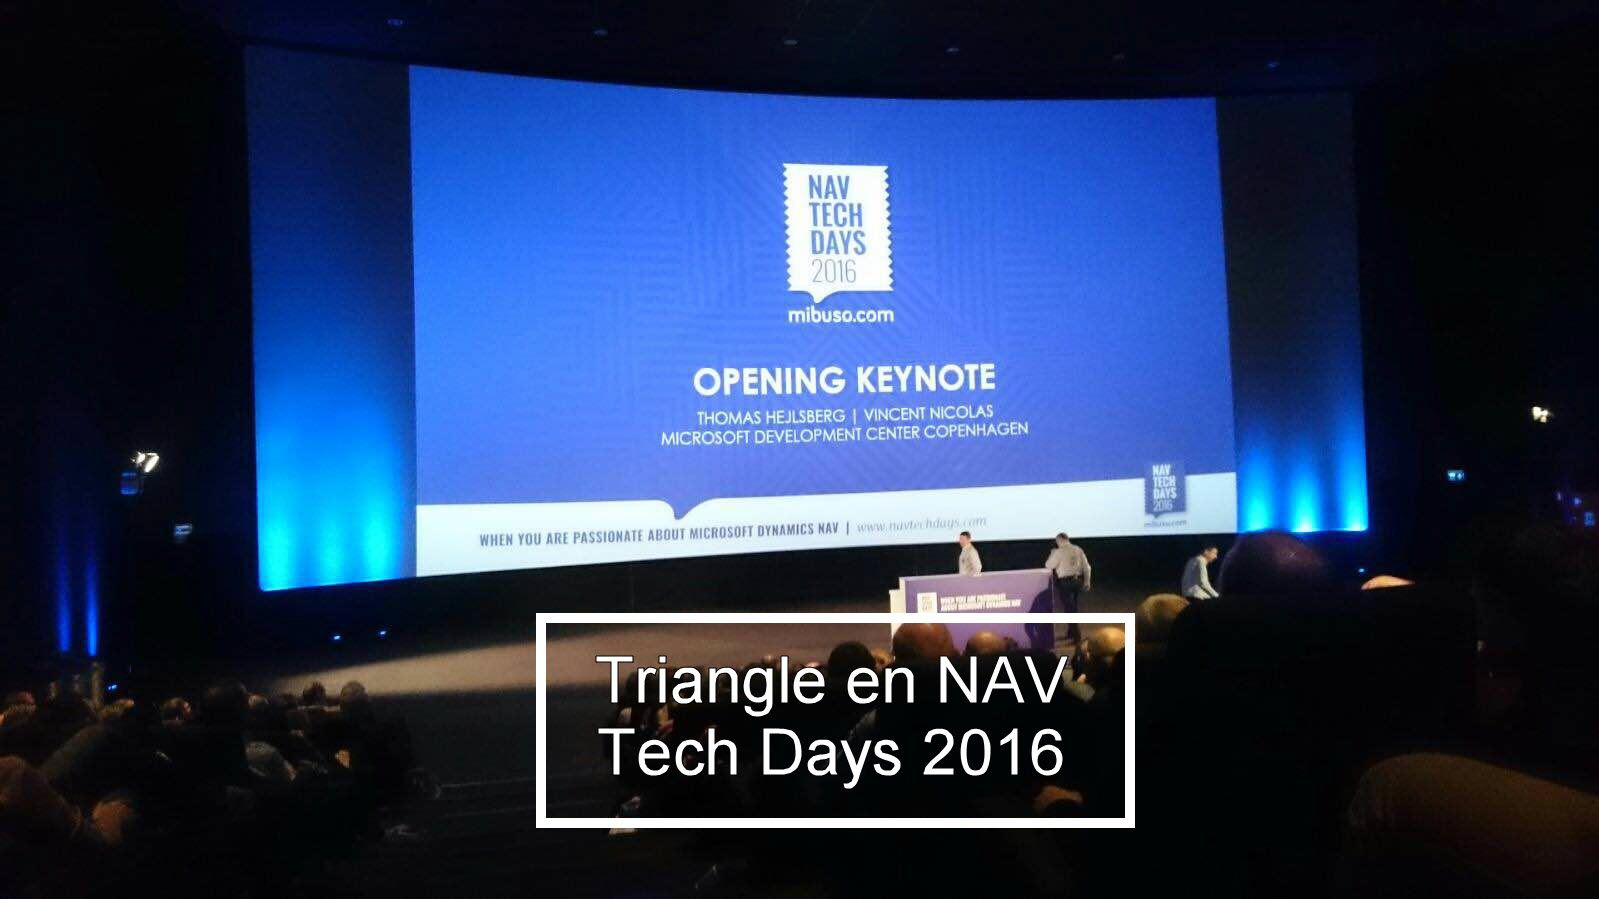 nav tech days 2016